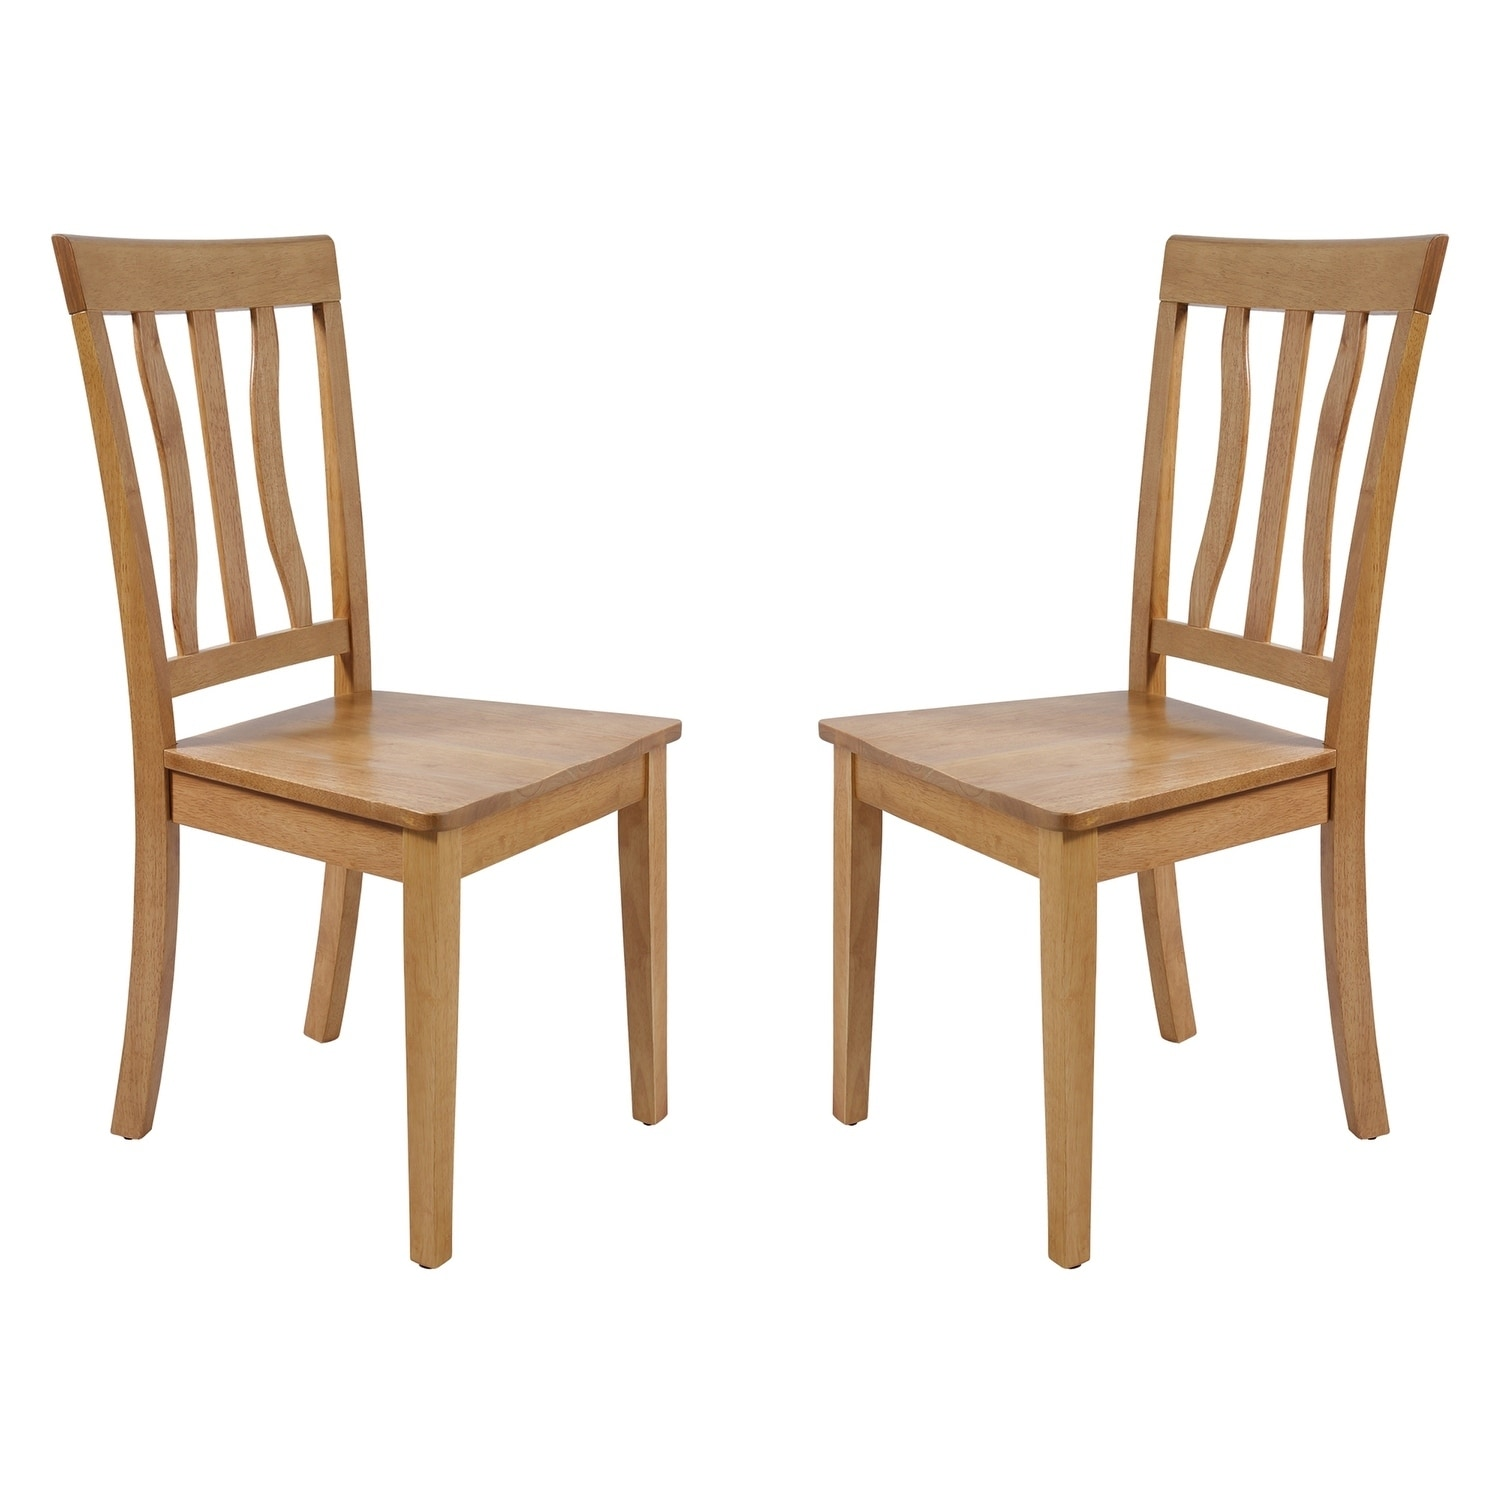 Solid Wood Sturdy Dining Chair / Modern Kitchen Chair, Oak